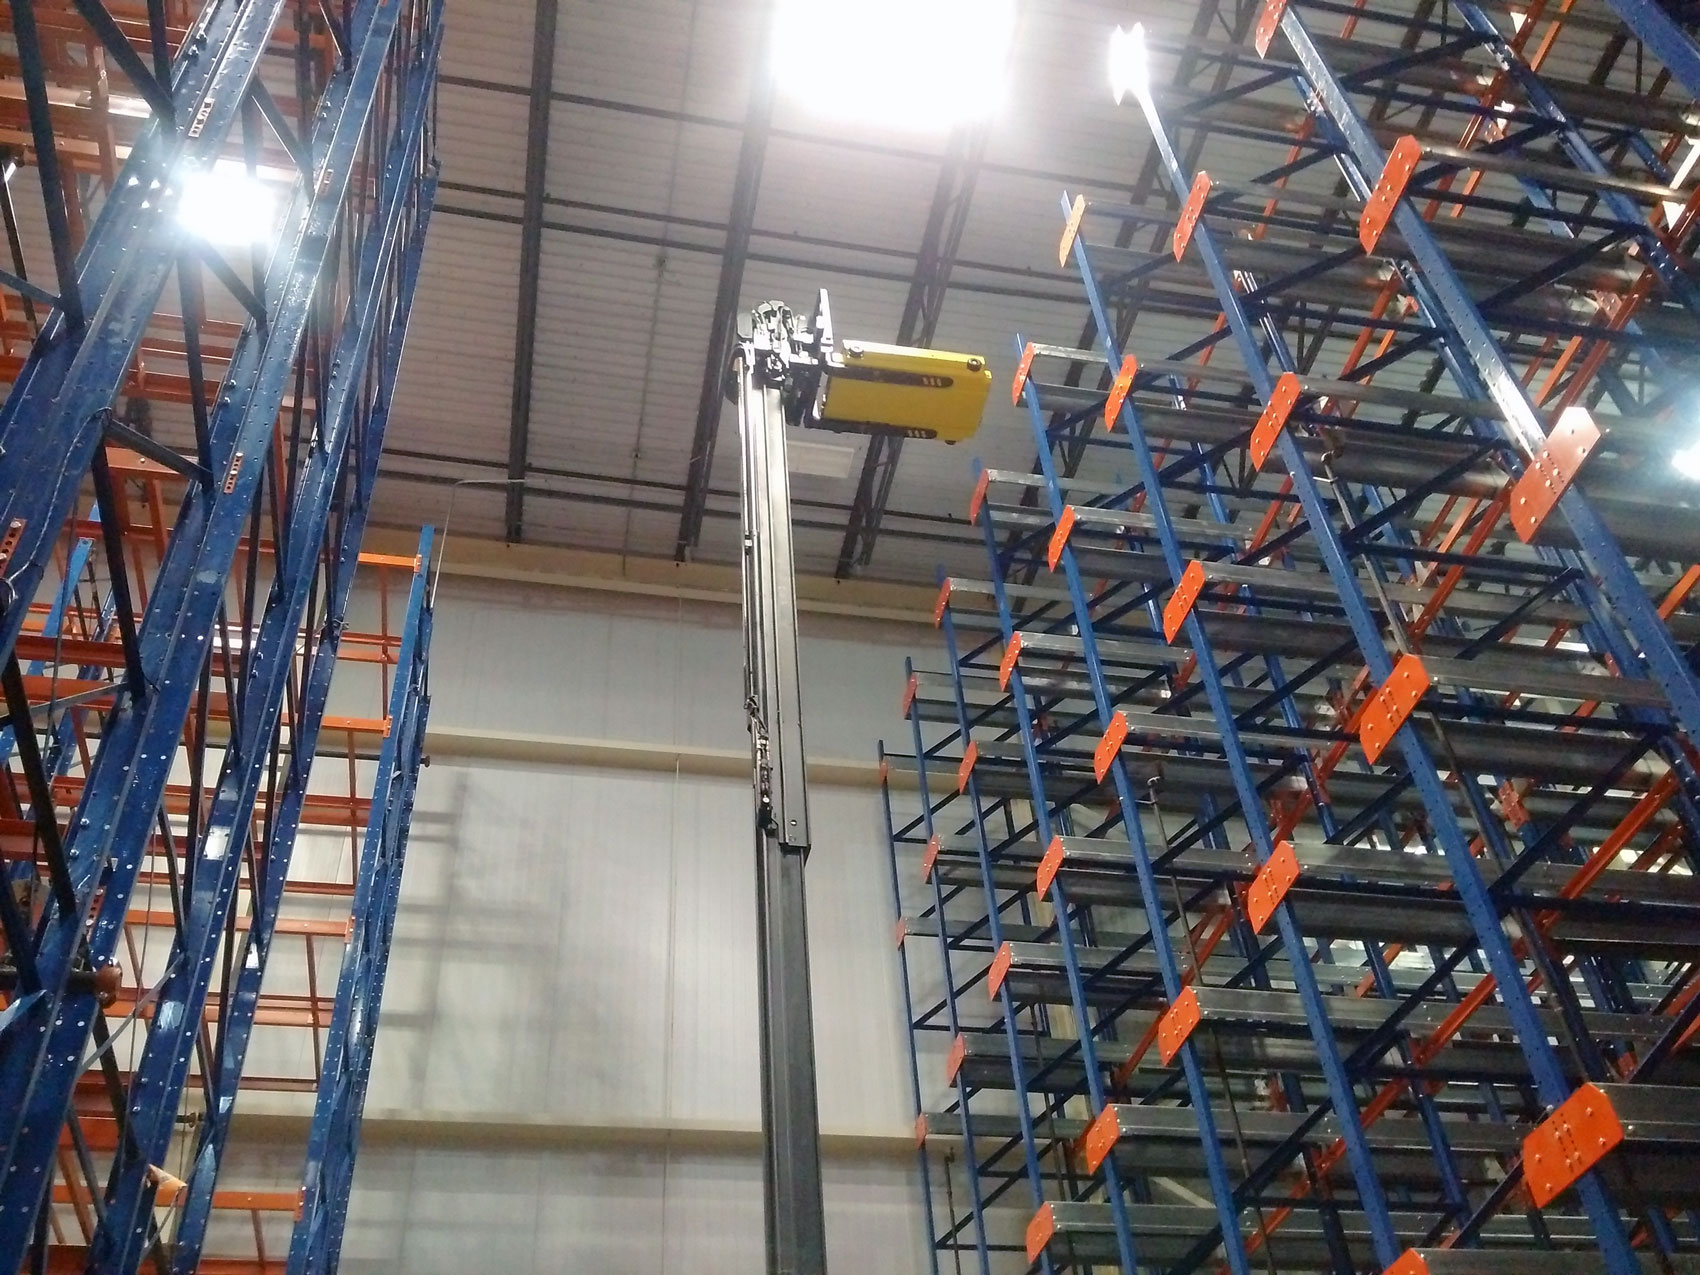 A Frazier Pallet Mole® application storing pallets seven positions high.